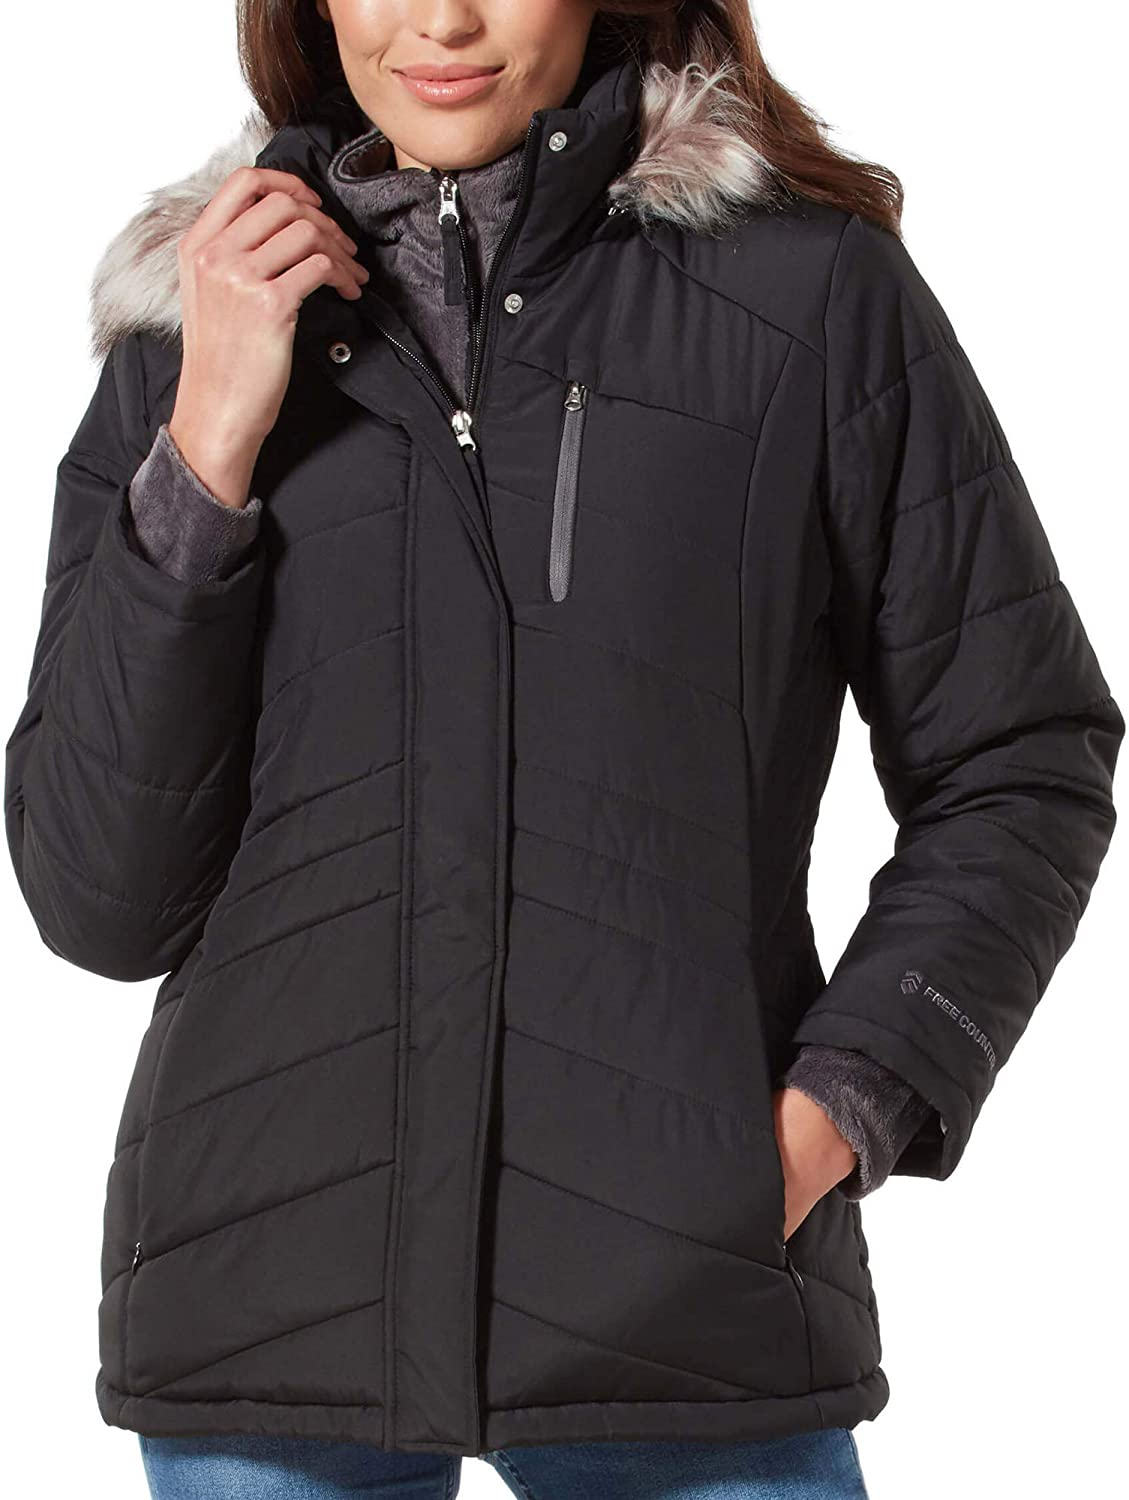 Free Country Women's Endeavor Parka Jacket